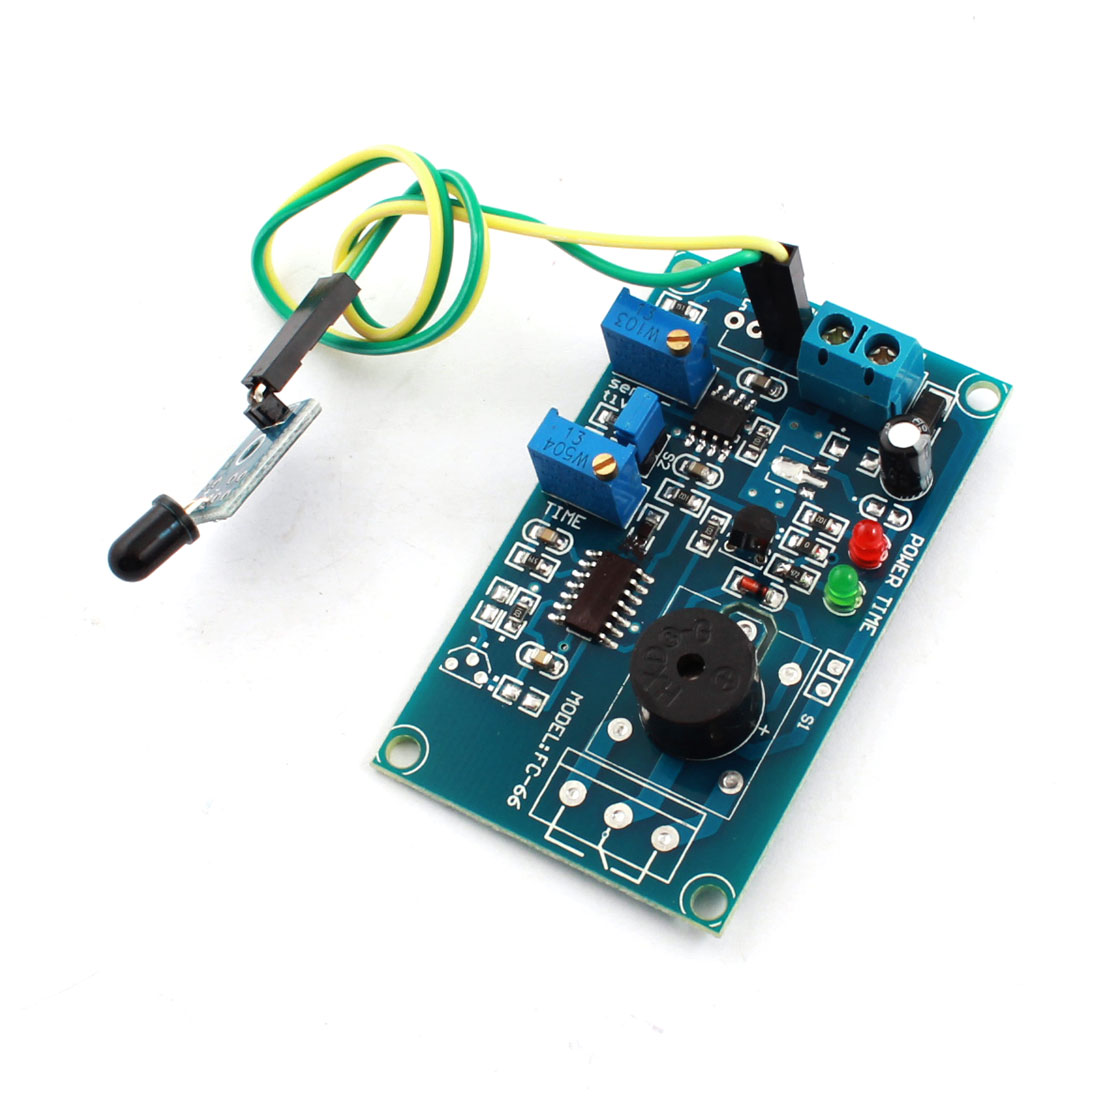 FC-66 DC5V Fire Fighting Light Detection Flame Sensor Infrared Receiver Alarm Buzzer Time Delay Module